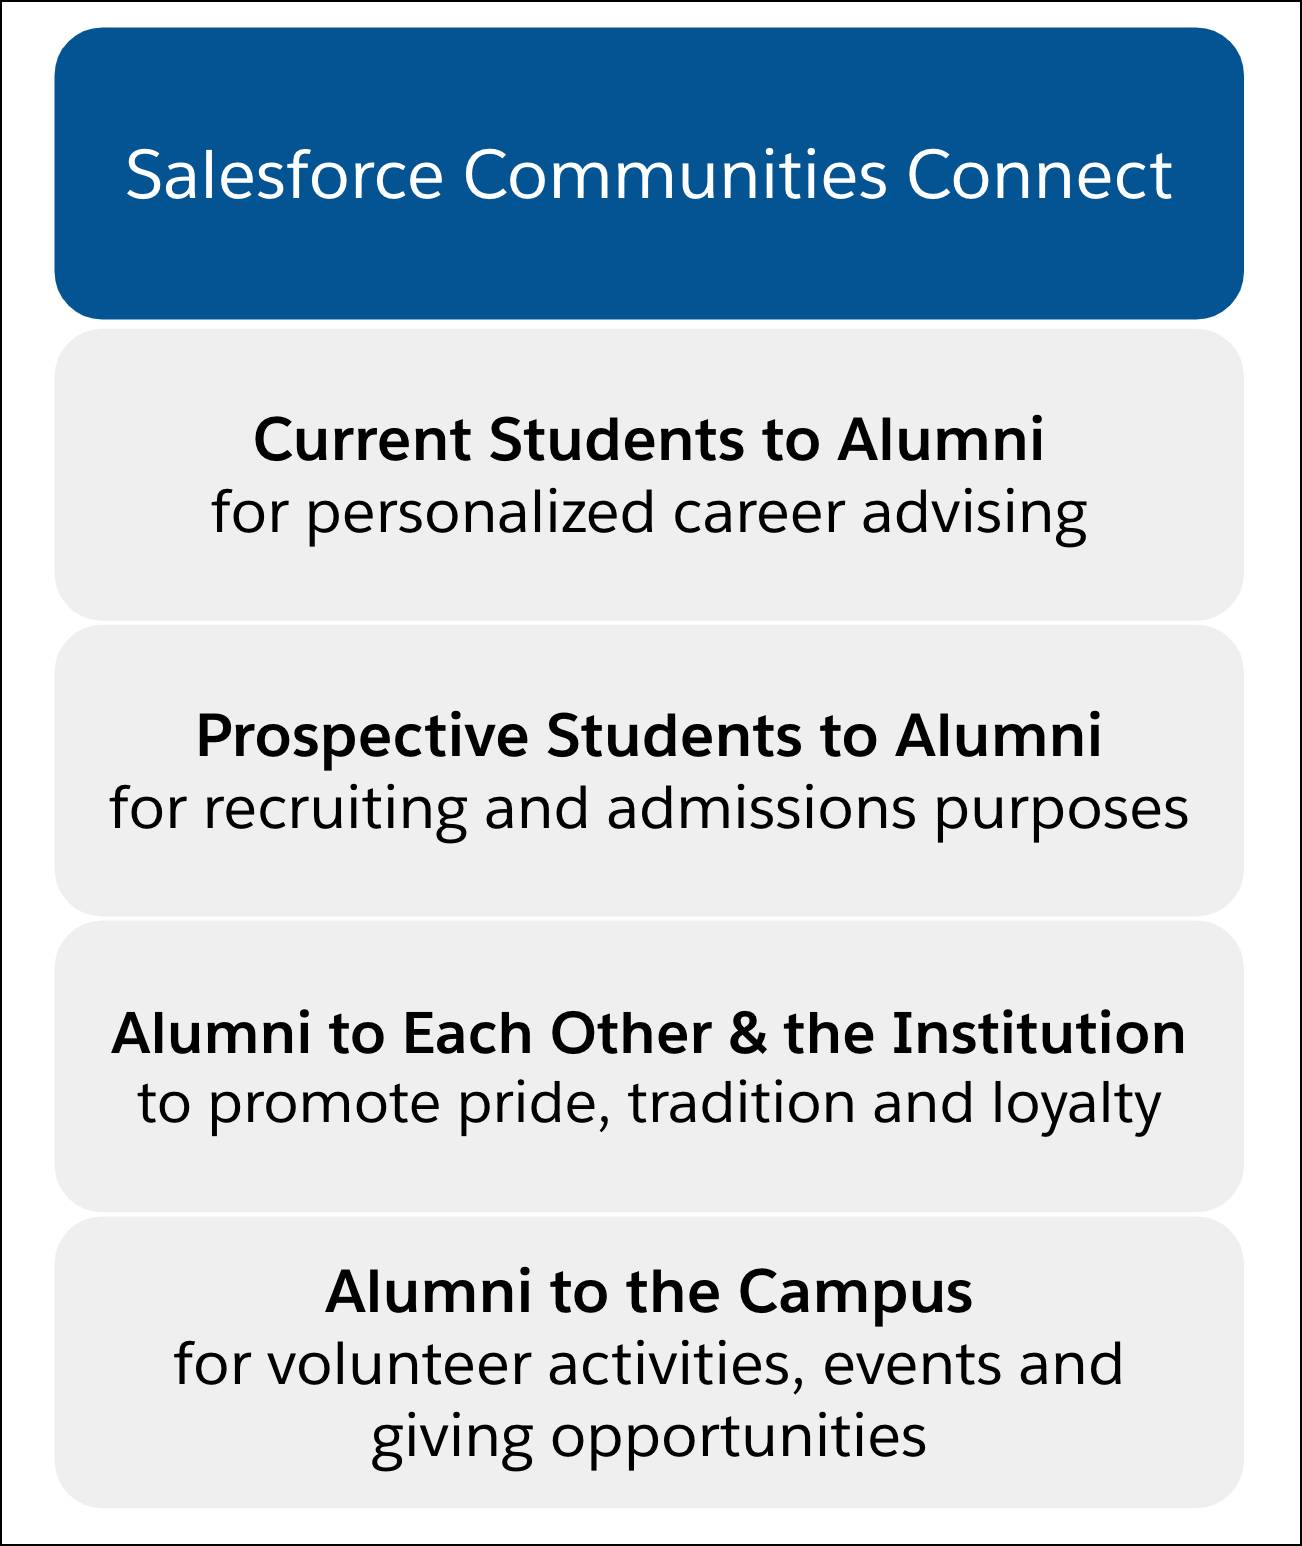 Salesforce Communities connect current students to alumni, prospective students to alumni, alumni to each other and the institution, and alumni to the campus.